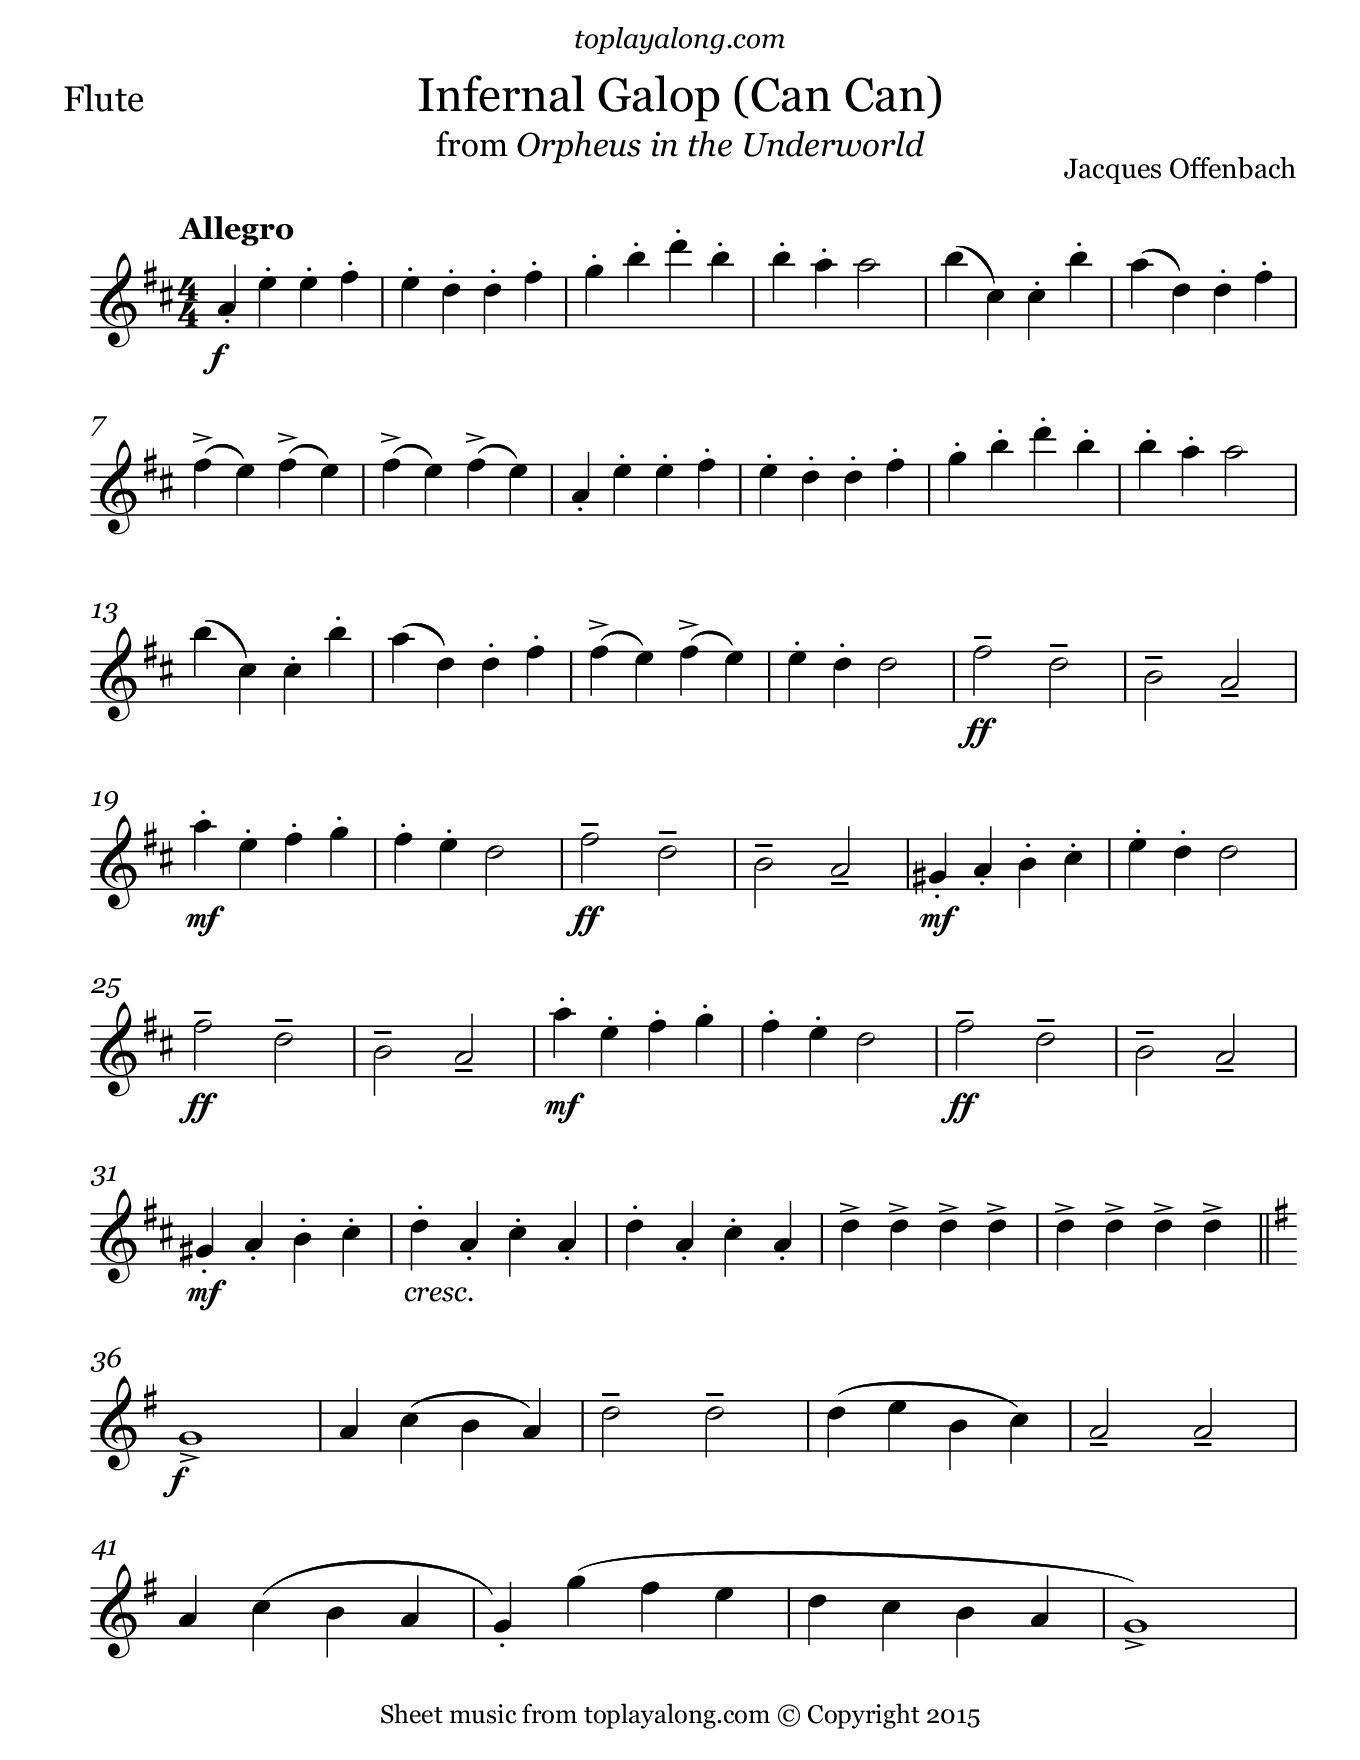 Infernal Galop (Can Can) from Orpheus by Offenbach. Sheet music for Flute, page 1.